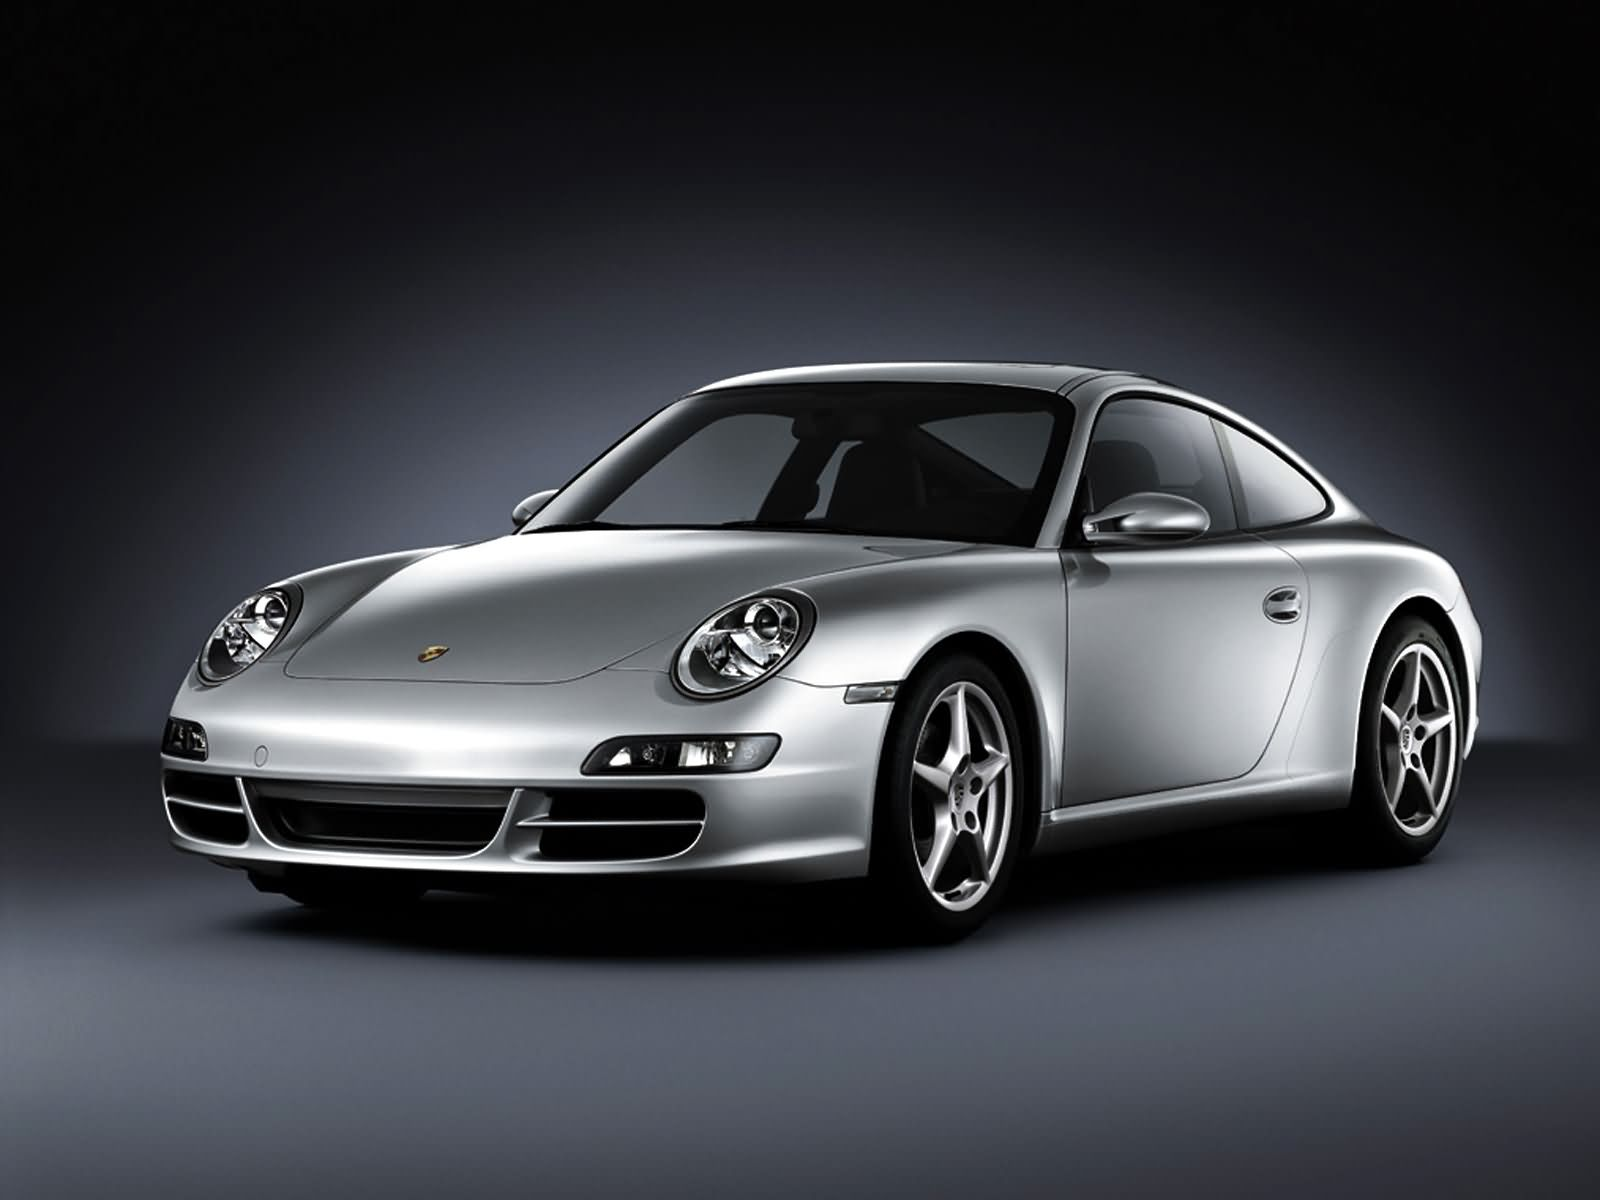 porsche 997 911 carrera photos photogallery with 35 pics. Black Bedroom Furniture Sets. Home Design Ideas